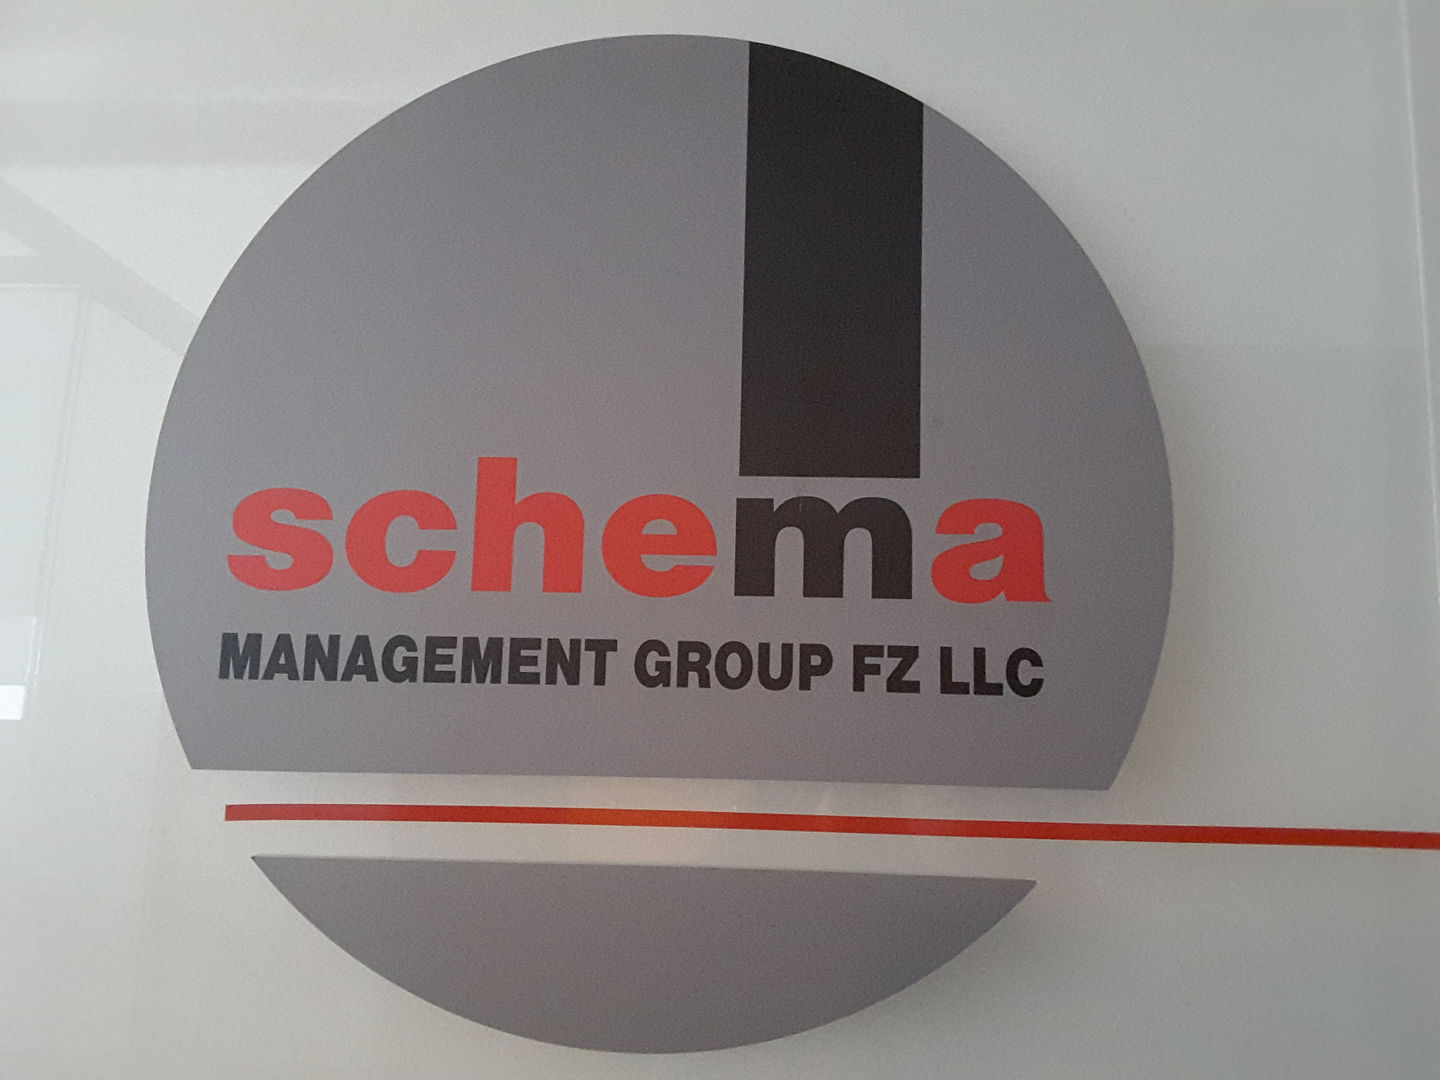 HiDubai-business-schema-management-group-limited-b2b-services-business-consultation-services-jumeirah-village-circle-al-barsha-south-4-dubai-2